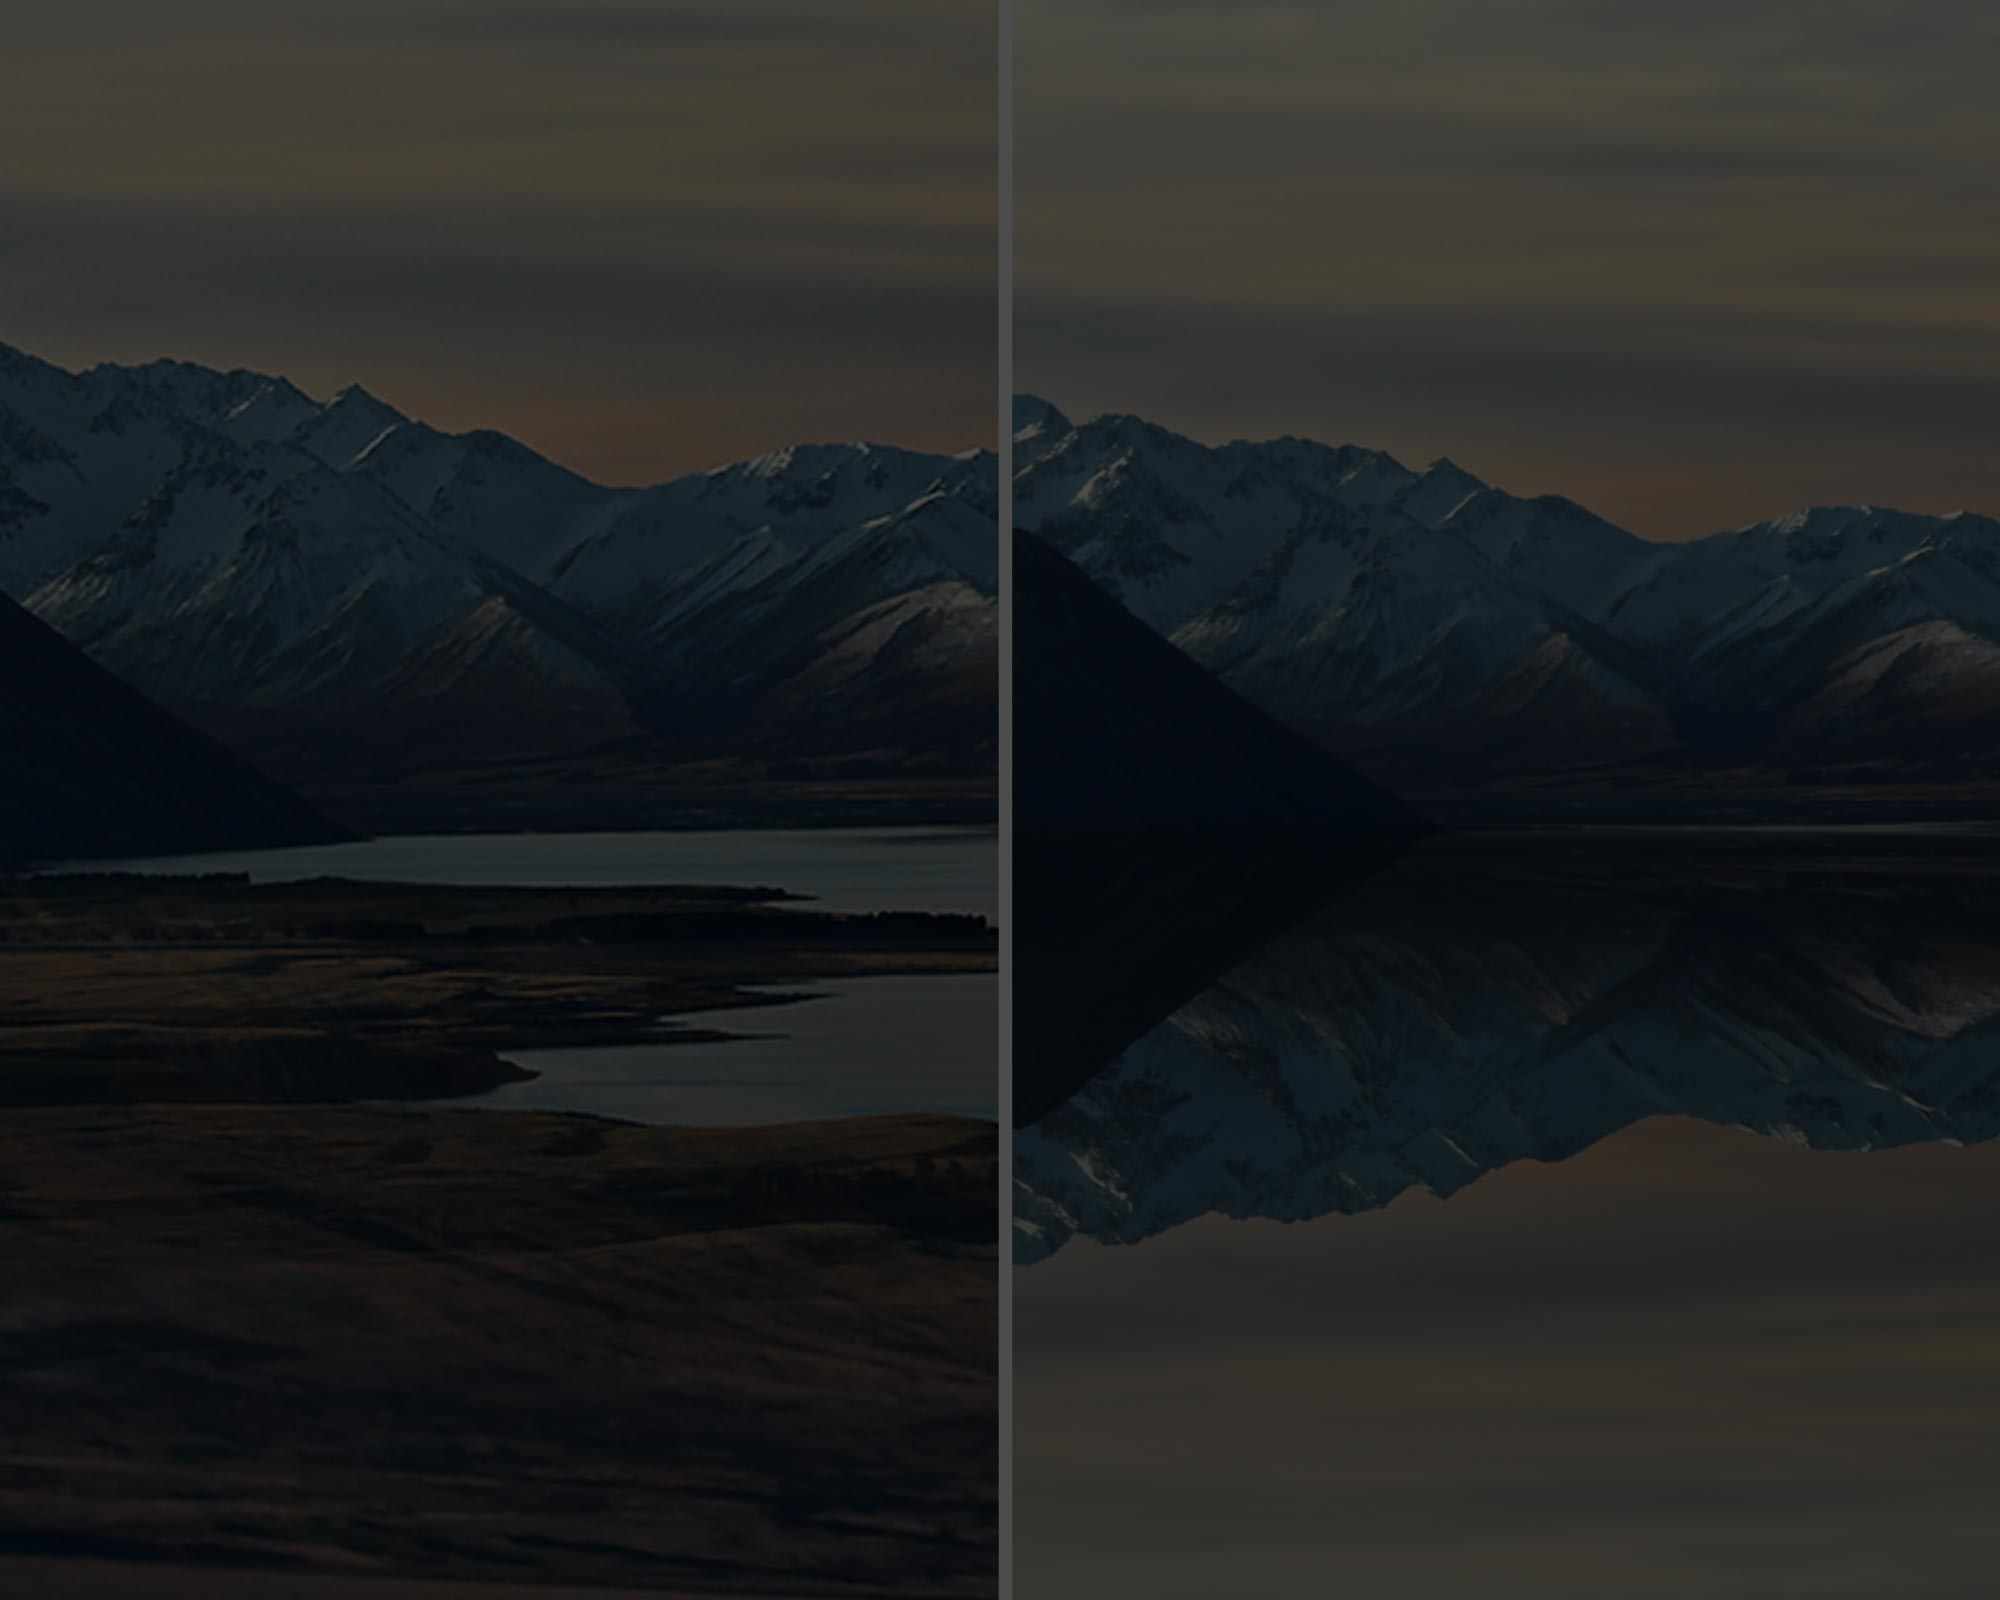 How to create a reflection in Photoshop in 2 minutes!